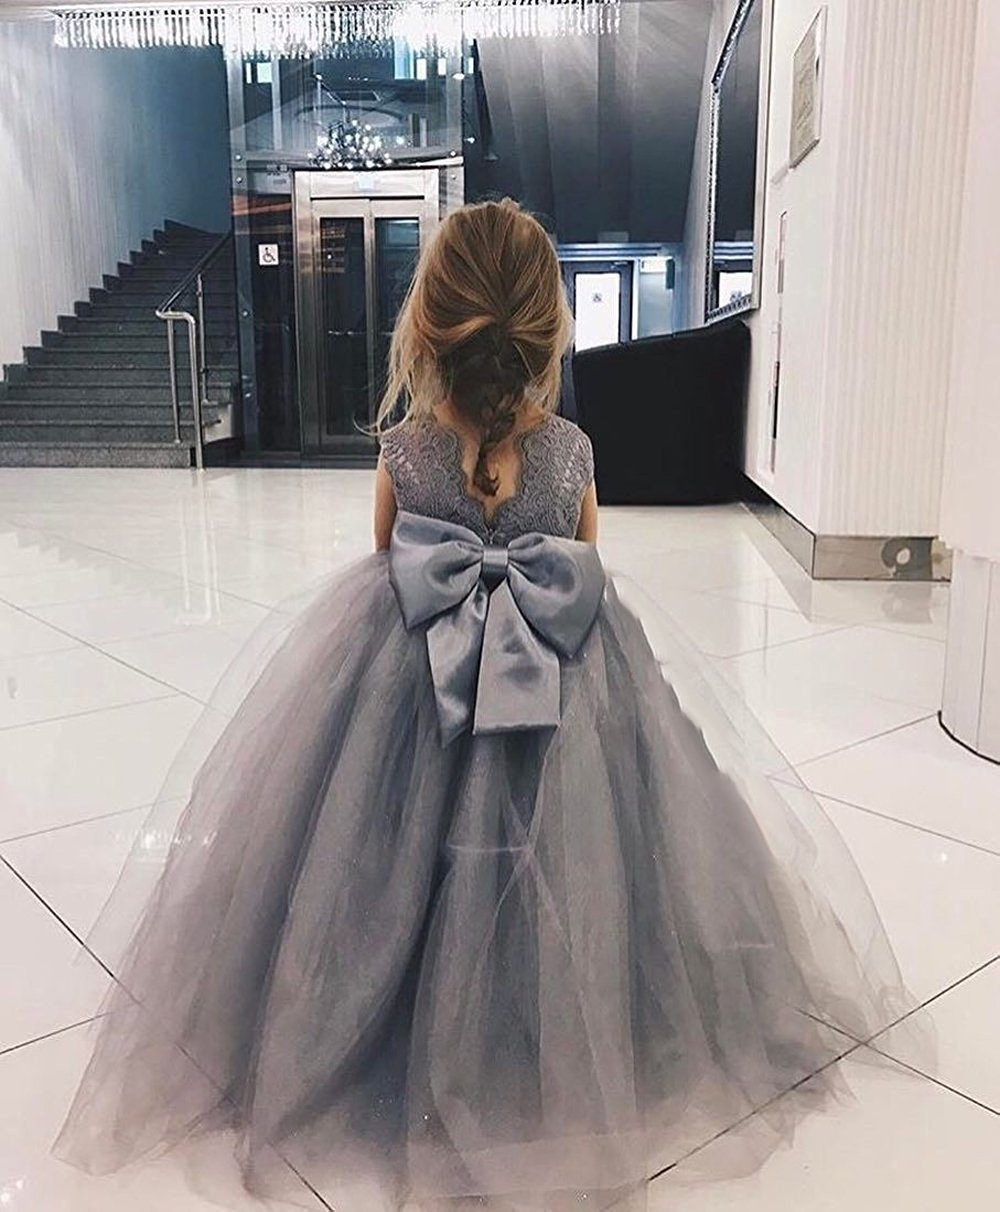 Banfvting Grey Ball Gown Flower Girl Dresses with Lace Bow by Banfvting (Image #2)